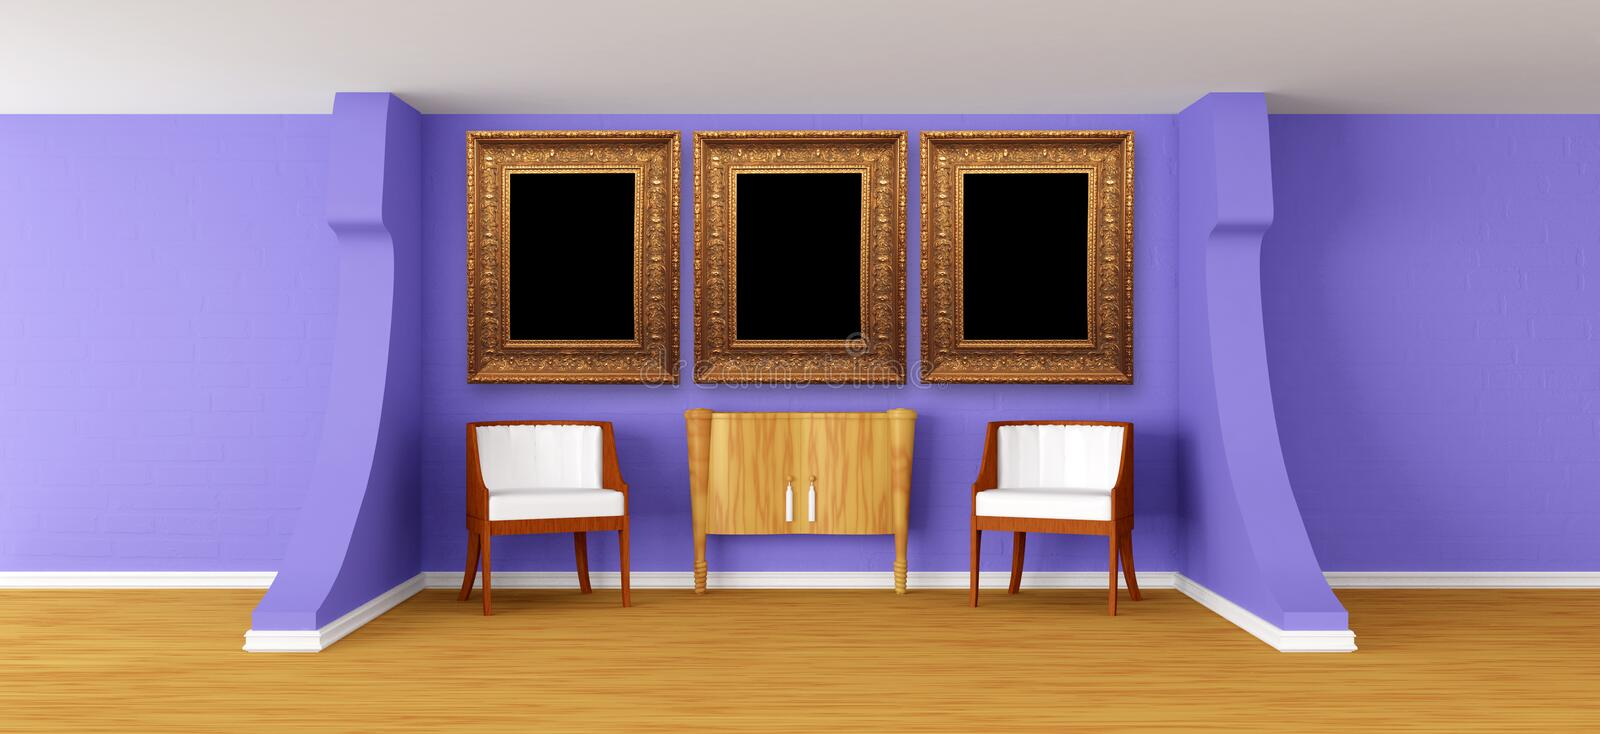 Download Modern Gallery With Luxurious Armchairs And Bureau Stock Illustration - Image: 20592767